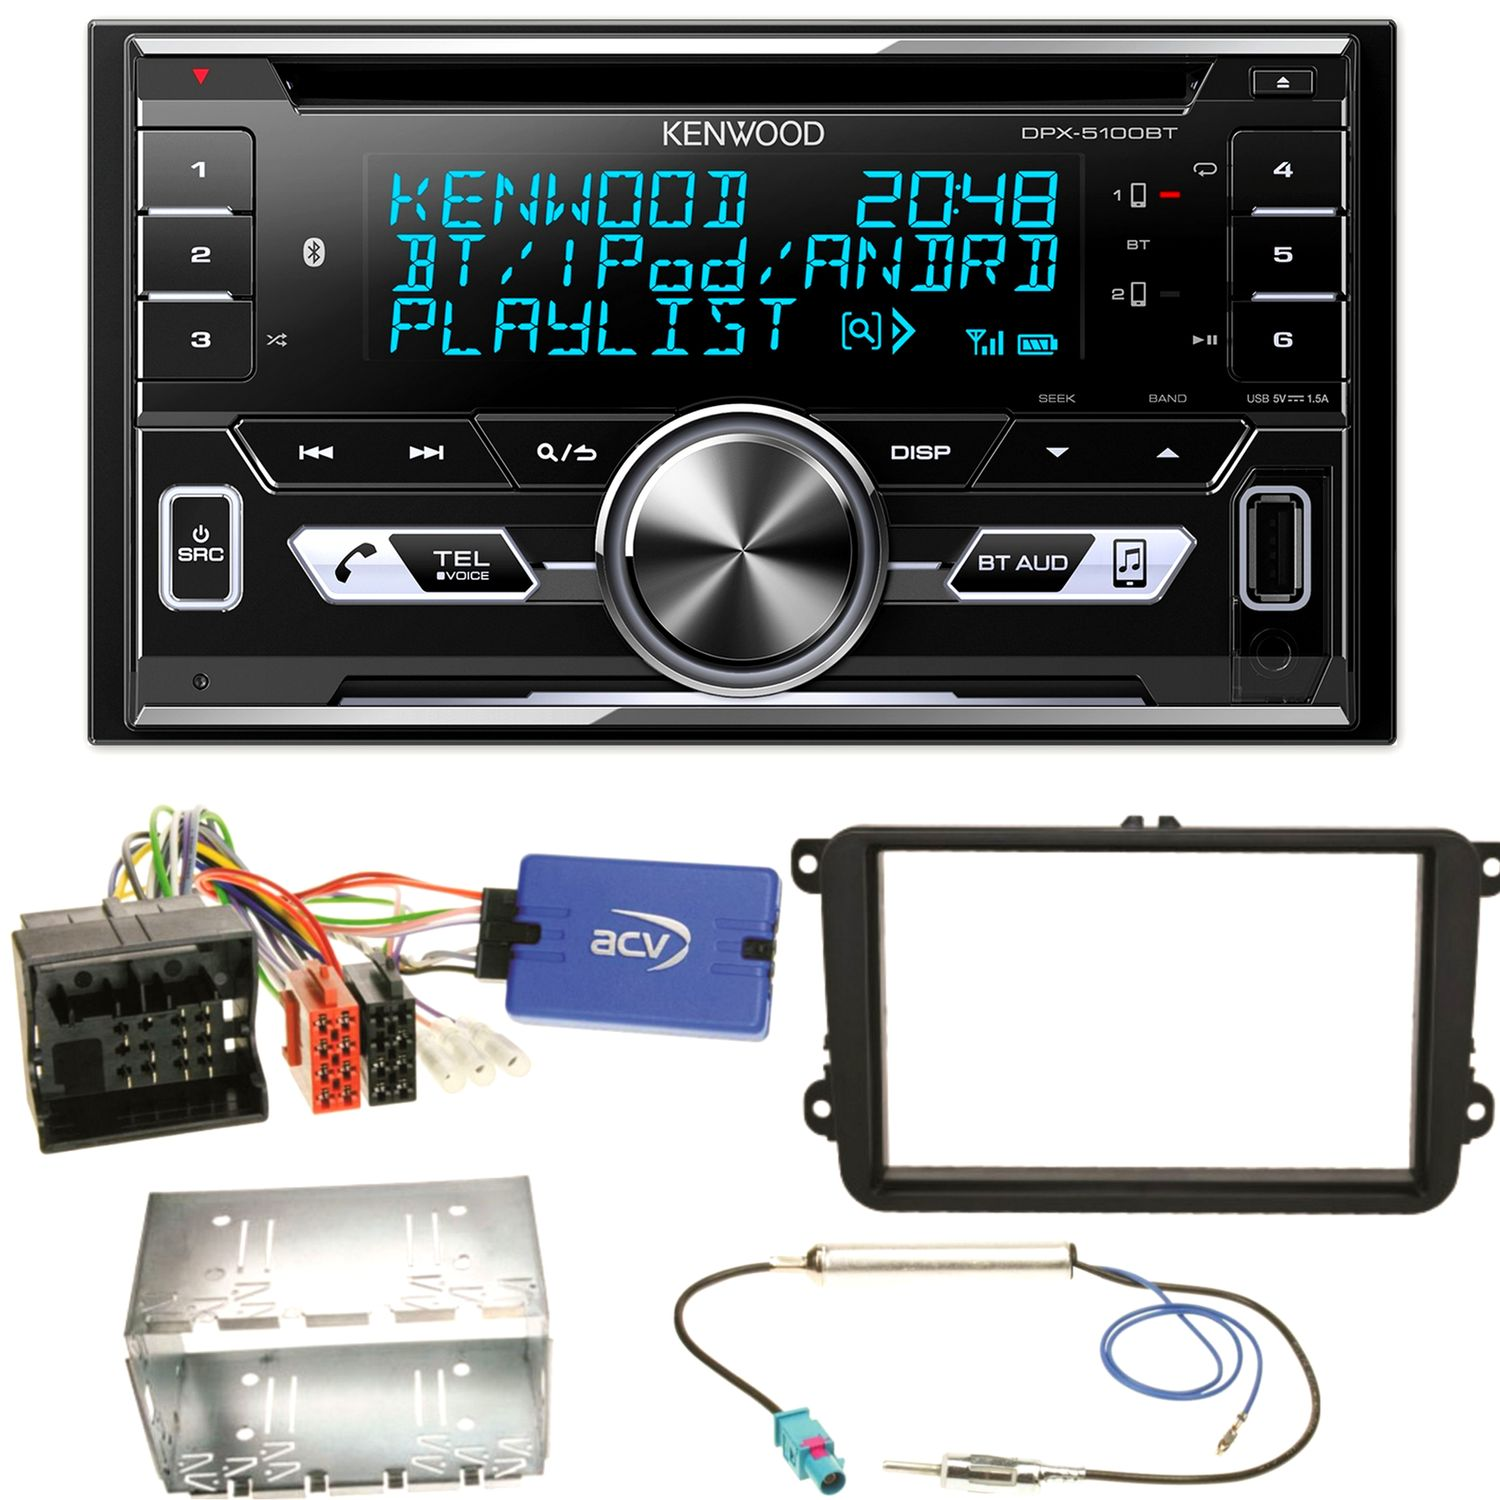 Kenwood DPX-5100BT CD MP3 Double Din Bluetooth Car Stereo USB Aux iPhone Android